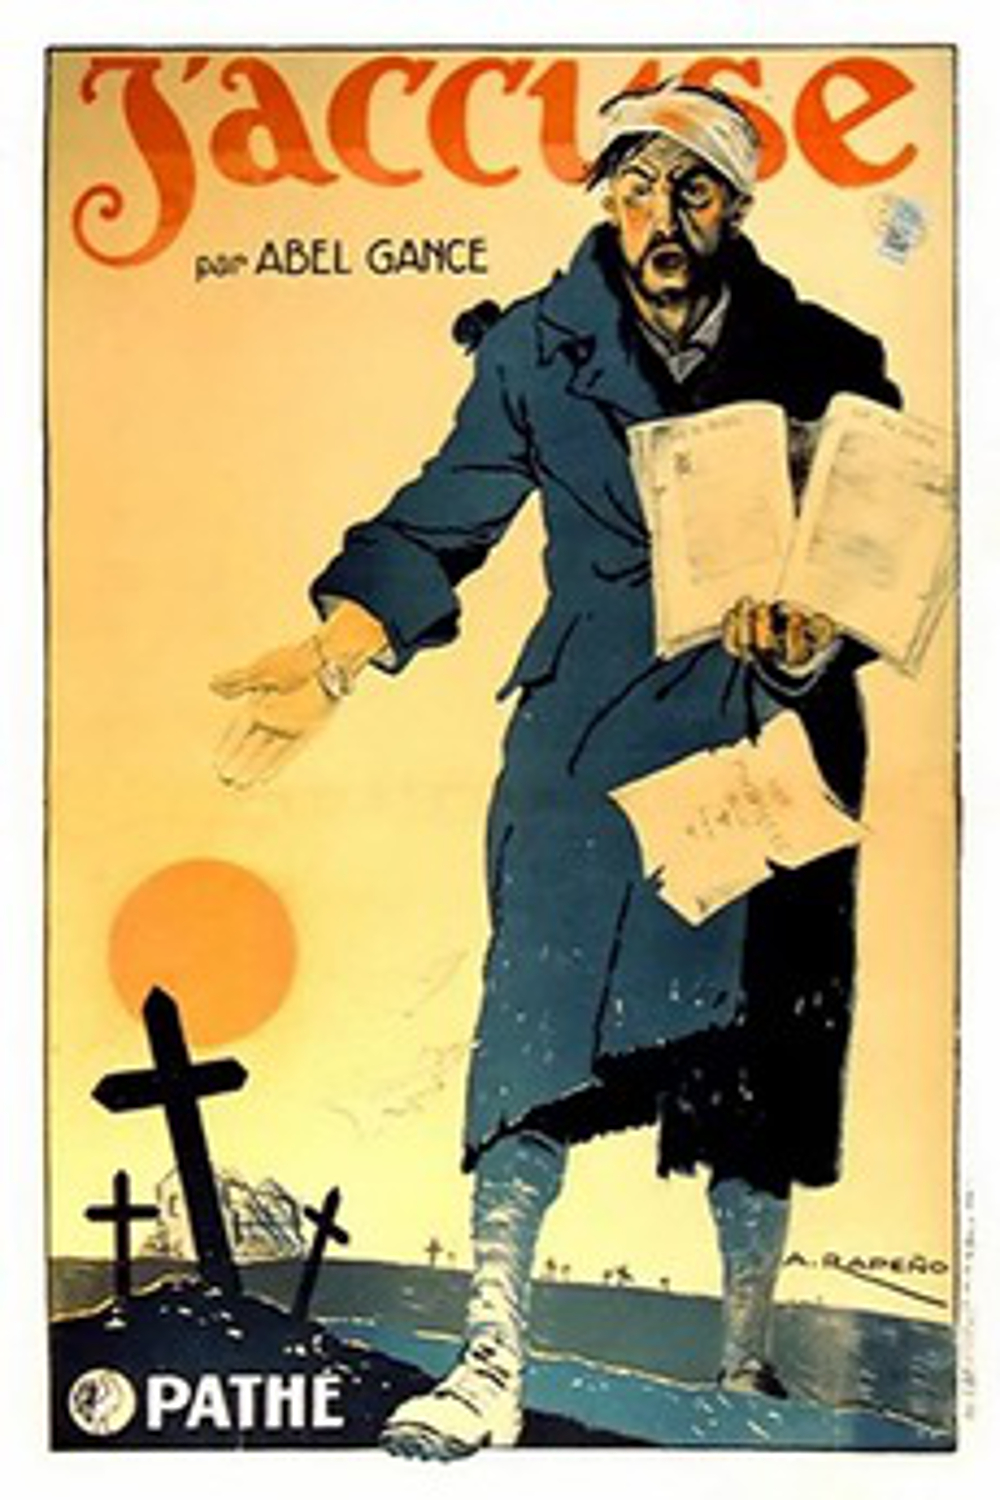 J'accuse! (1919) BluRay 1080p